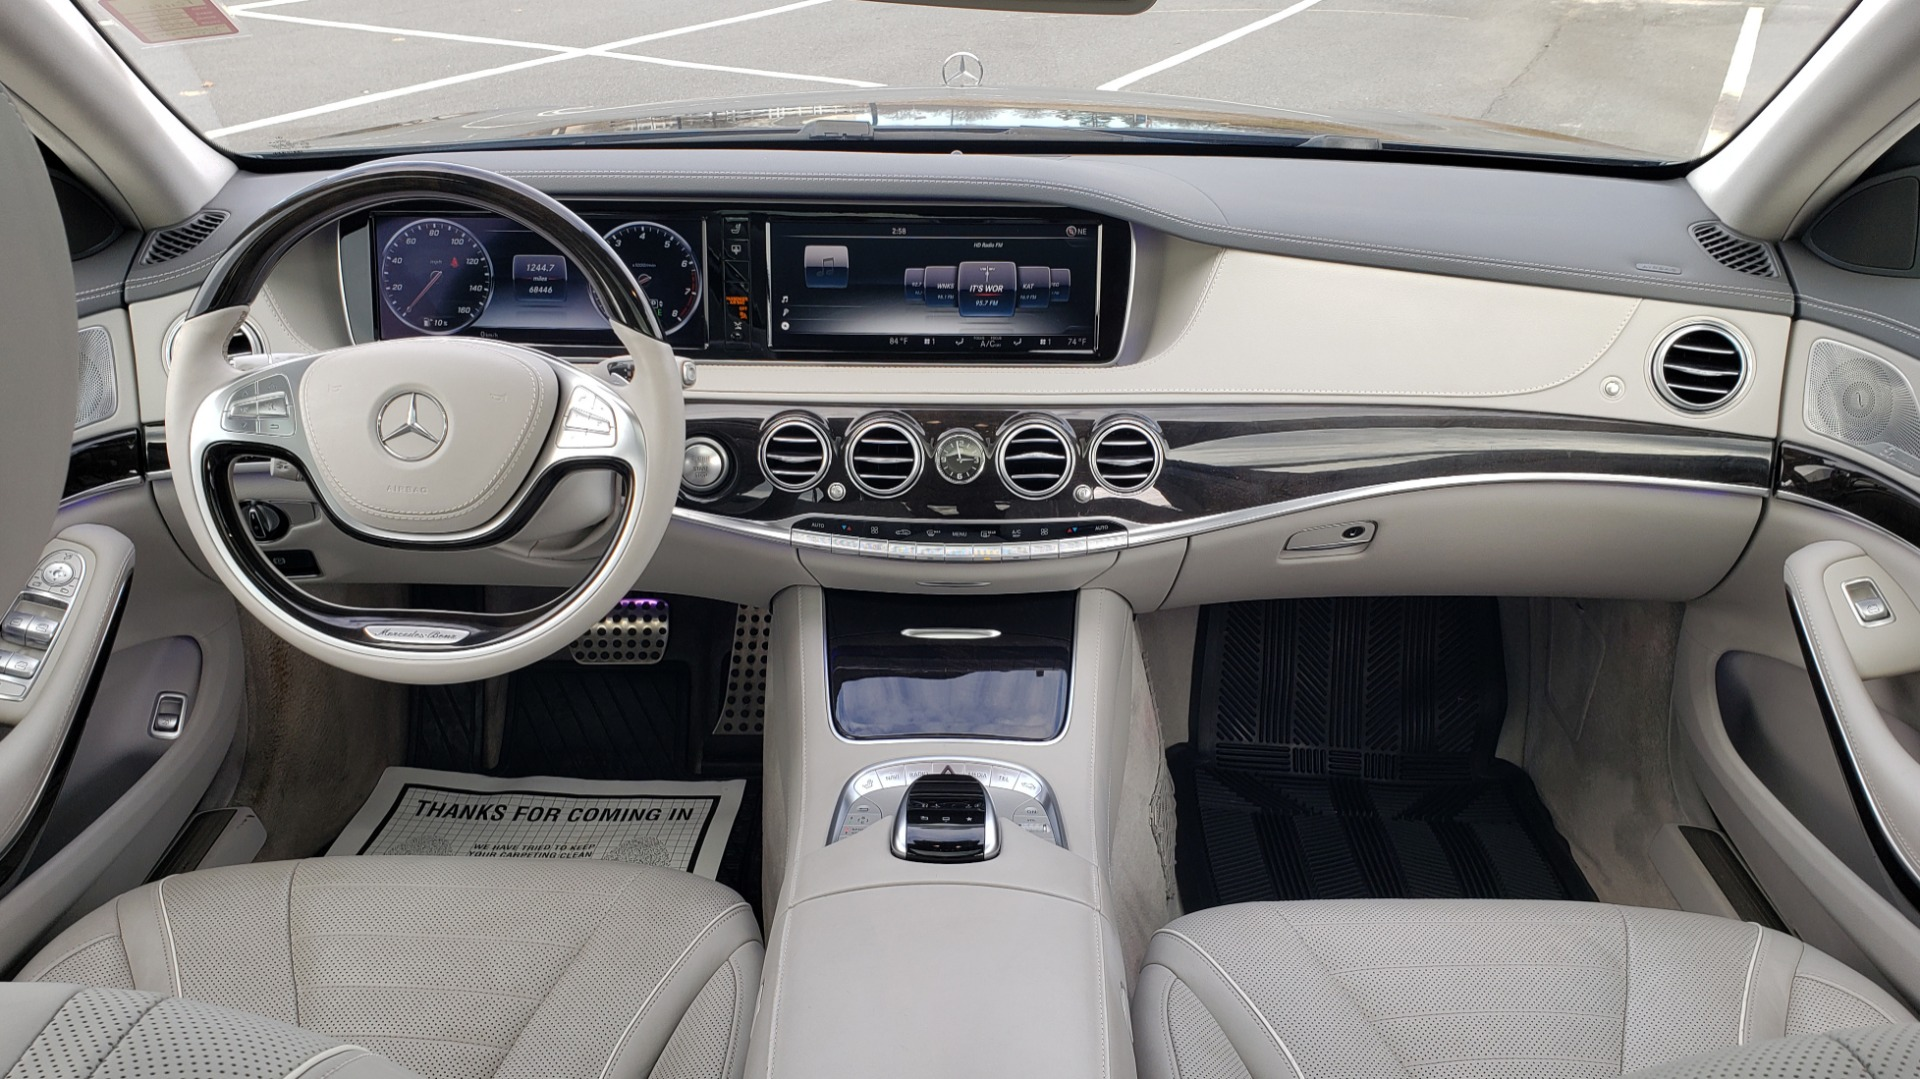 Used 2015 Mercedes-Benz S-CLASS S 550 PREMIUM / SPORT / WARMTH&COMFORT / DRVR ASST / SRND VIEW for sale Sold at Formula Imports in Charlotte NC 28227 91